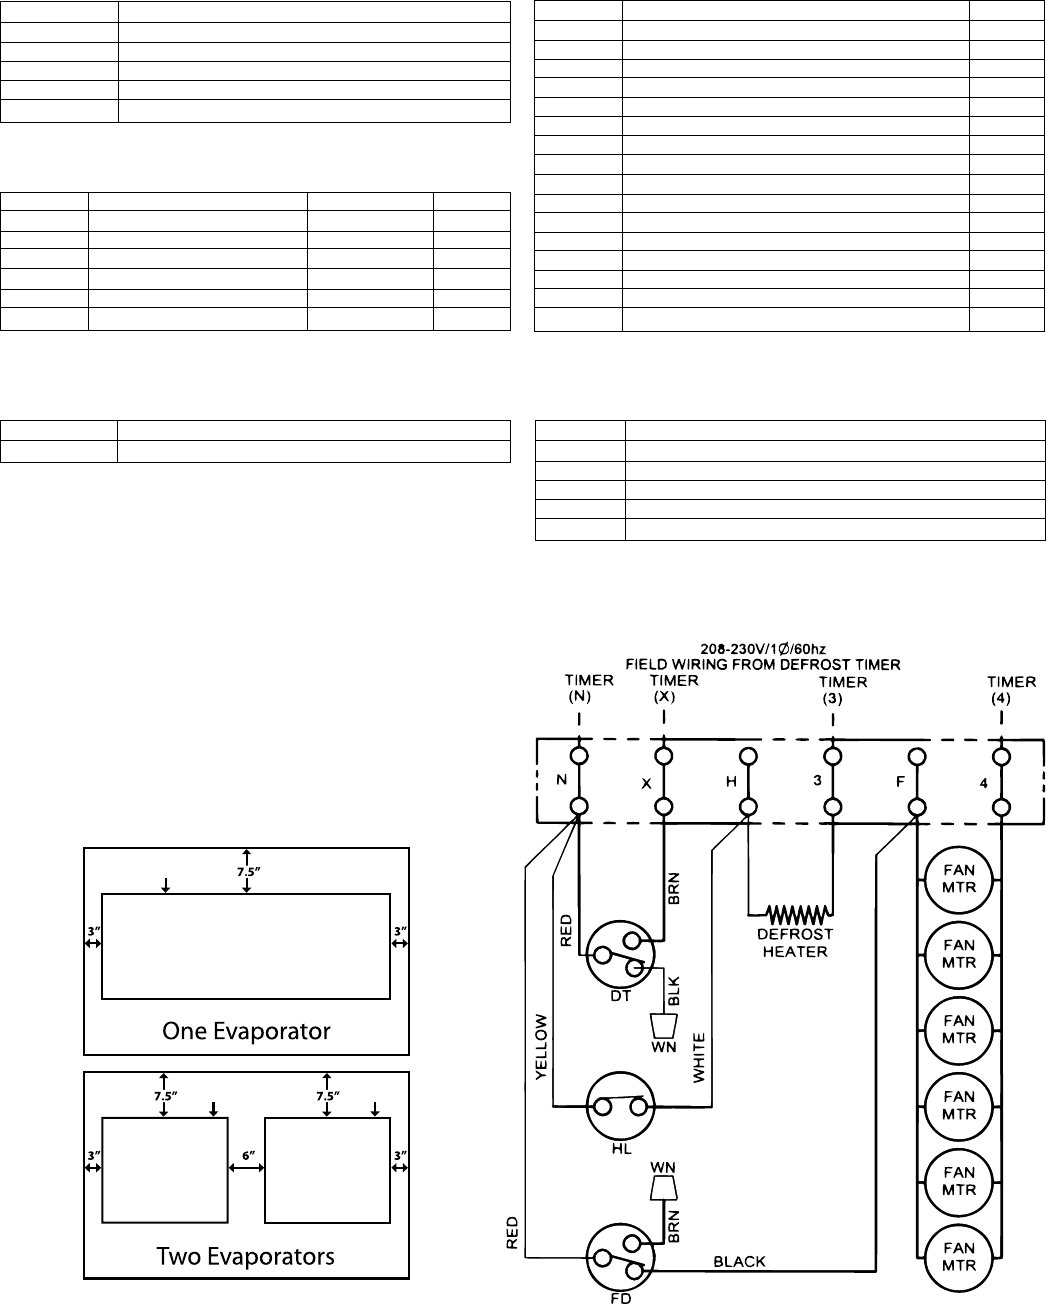 2f271777 ed48 431c affa 693c84f3fb6b bgb page 11 of heatcraft refrigeration products humidifier 25005601 defrost termination switch wiring diagram at fashall.co